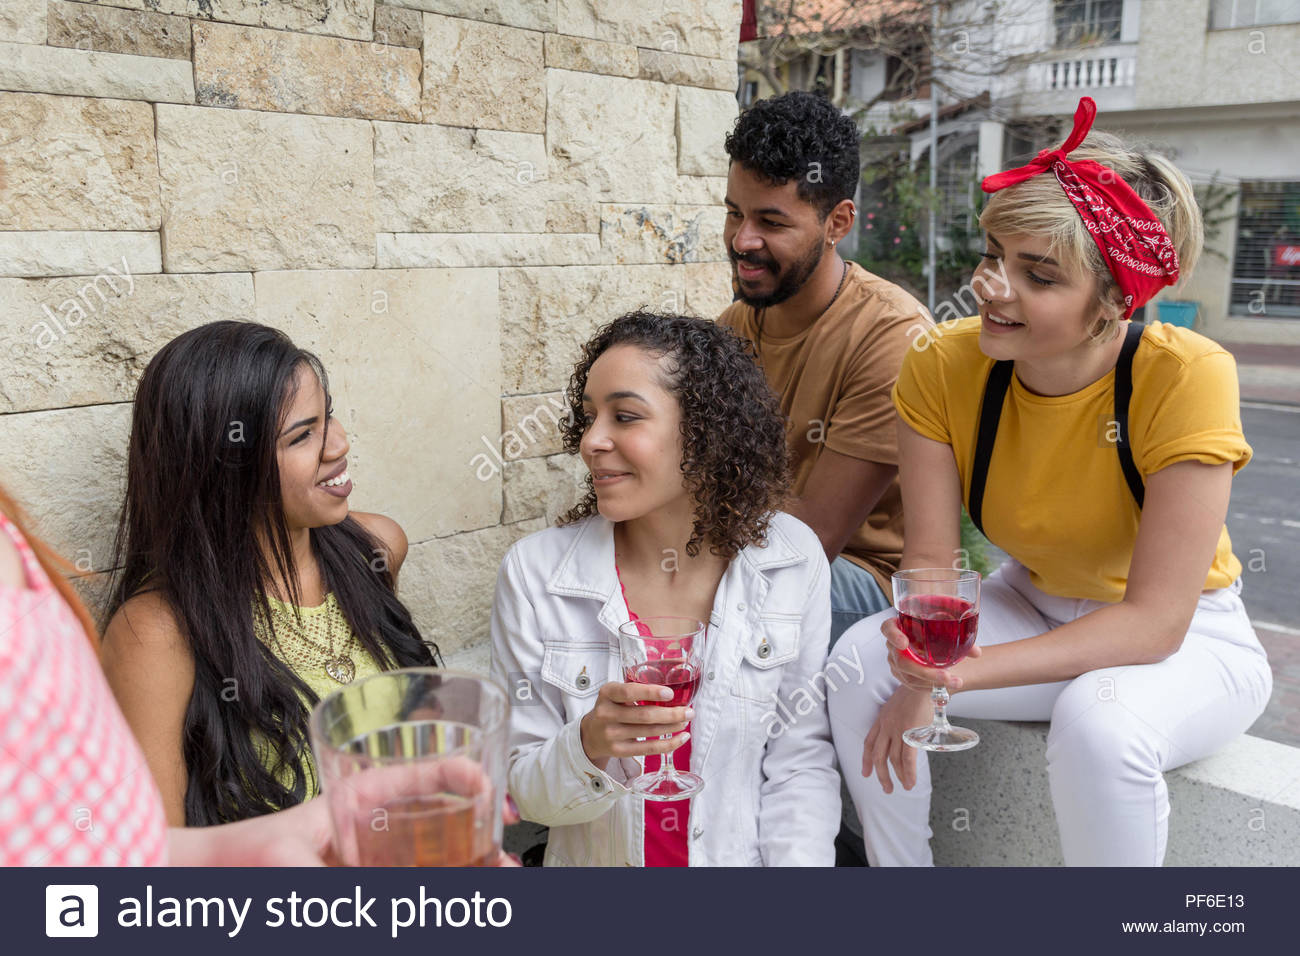 Mixed race people bonding and drinking at restaurant outside. Group of happy smiling students having a great time at cafe bar outdoor. Summer, warm, f - Stock Image